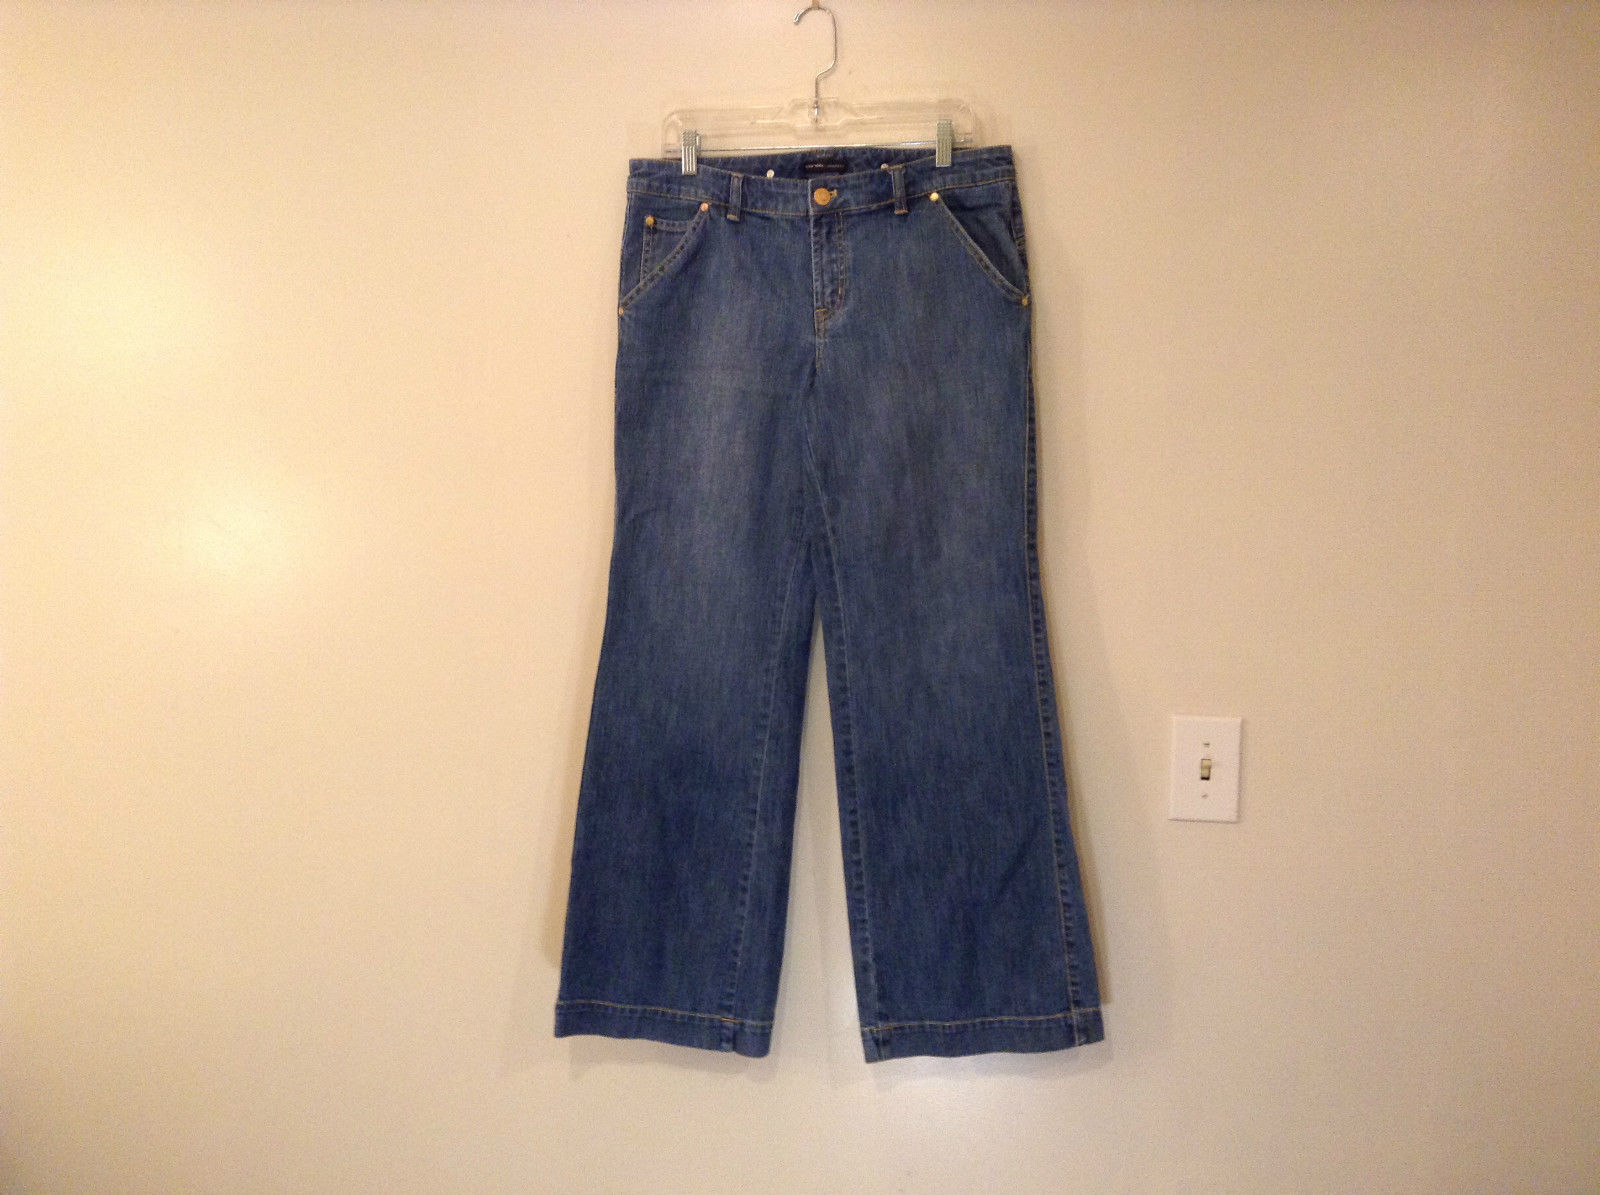 Medium Wash Blue Jeans New York and Company Size 12 Very Good Condition